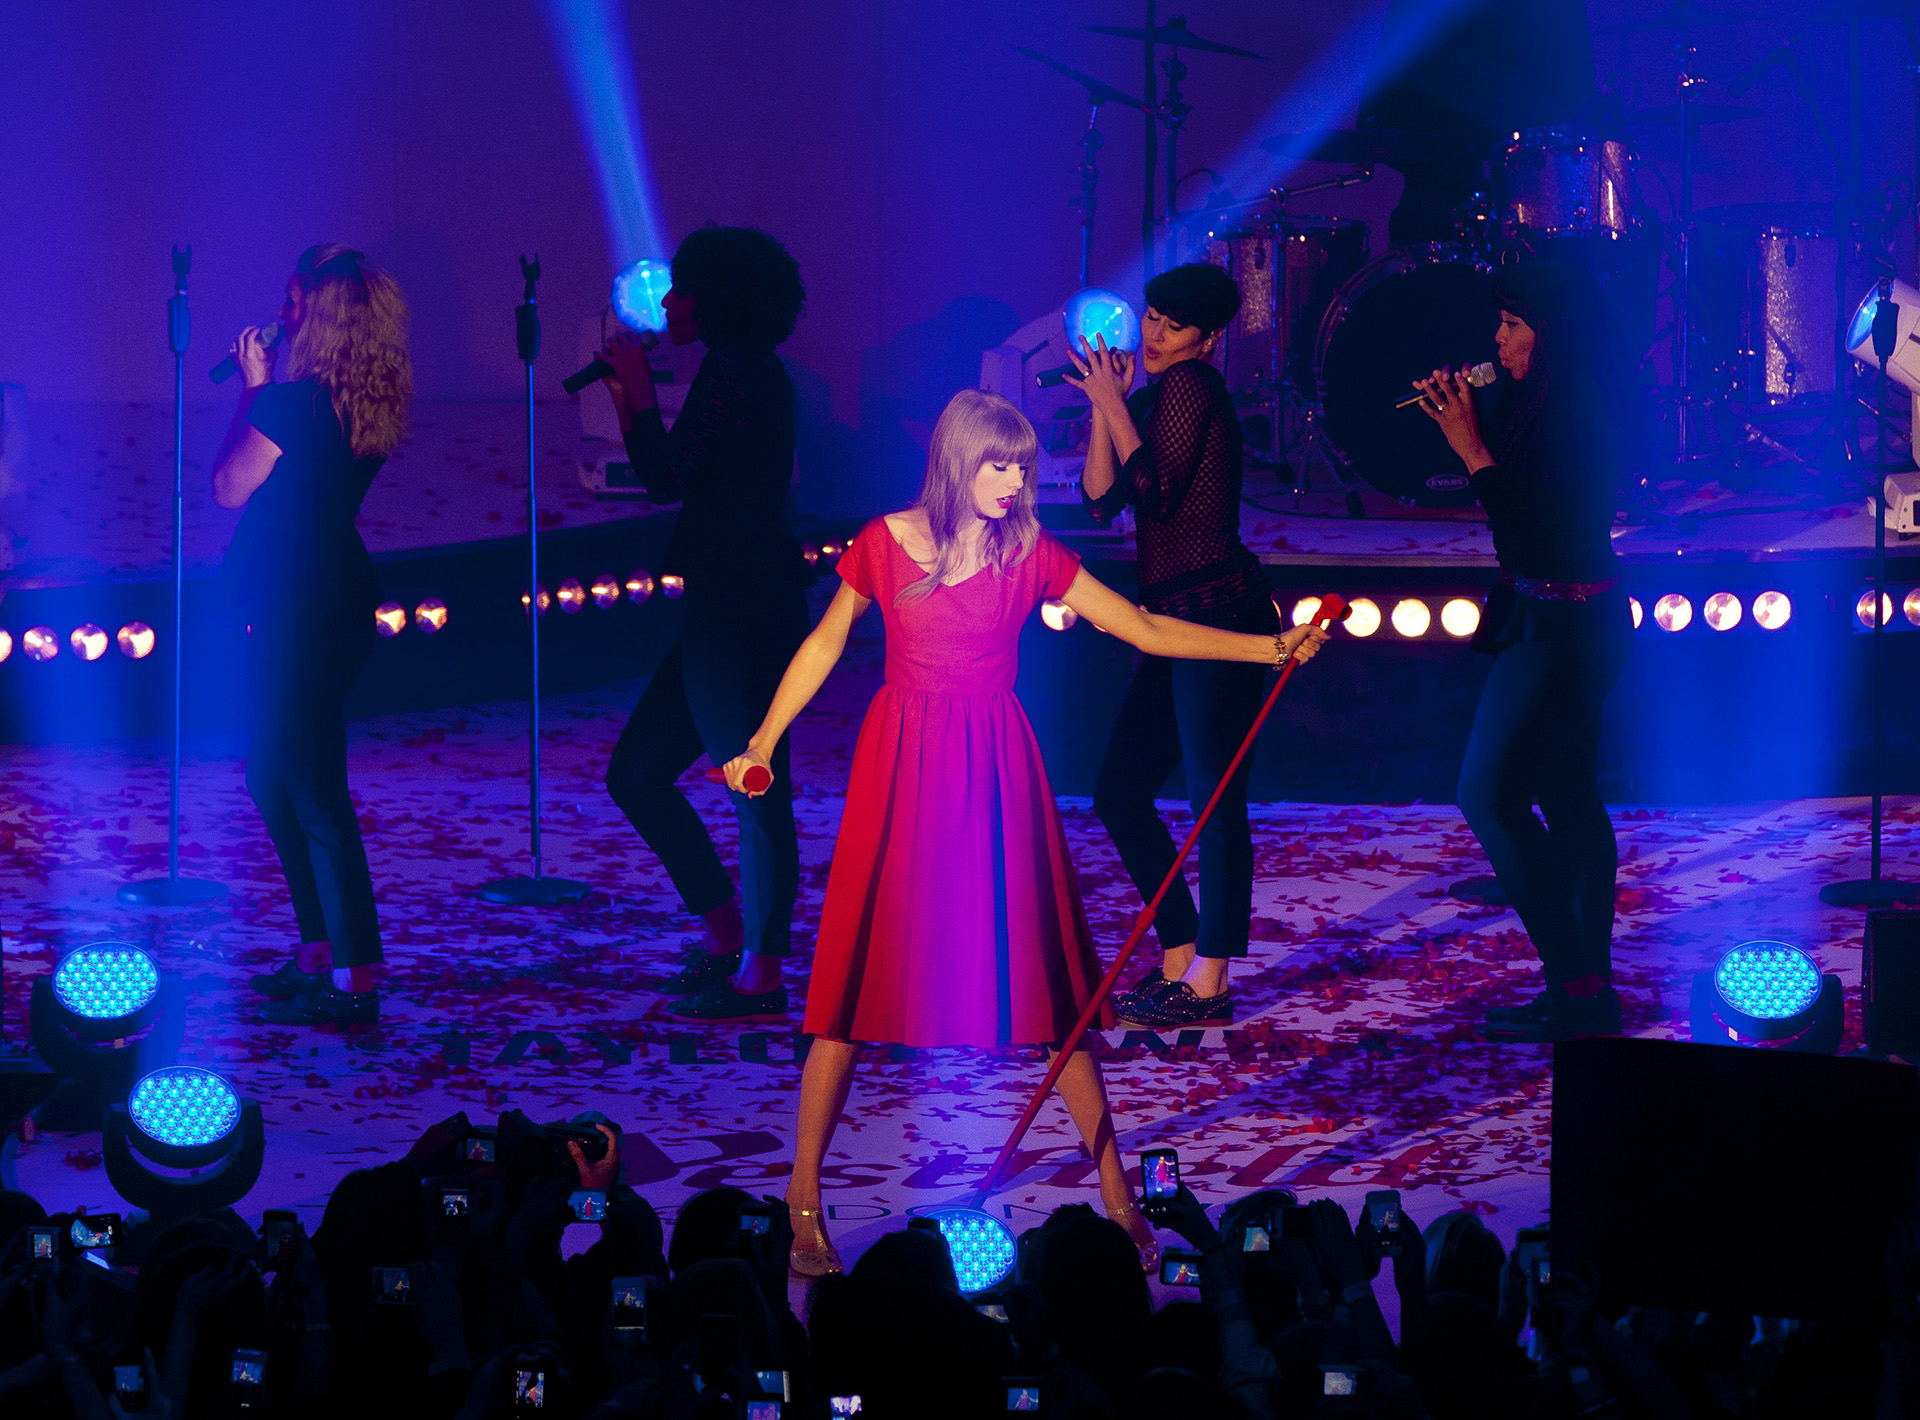 Taylor Swift switches on the Christmas lights and performs at Westfield London in Shepherds Bush, London. PRESS ASSOCIATION Photo. Picture date: Tuesday, November 06, 2012. Photo credit should read: John Phillips/PA